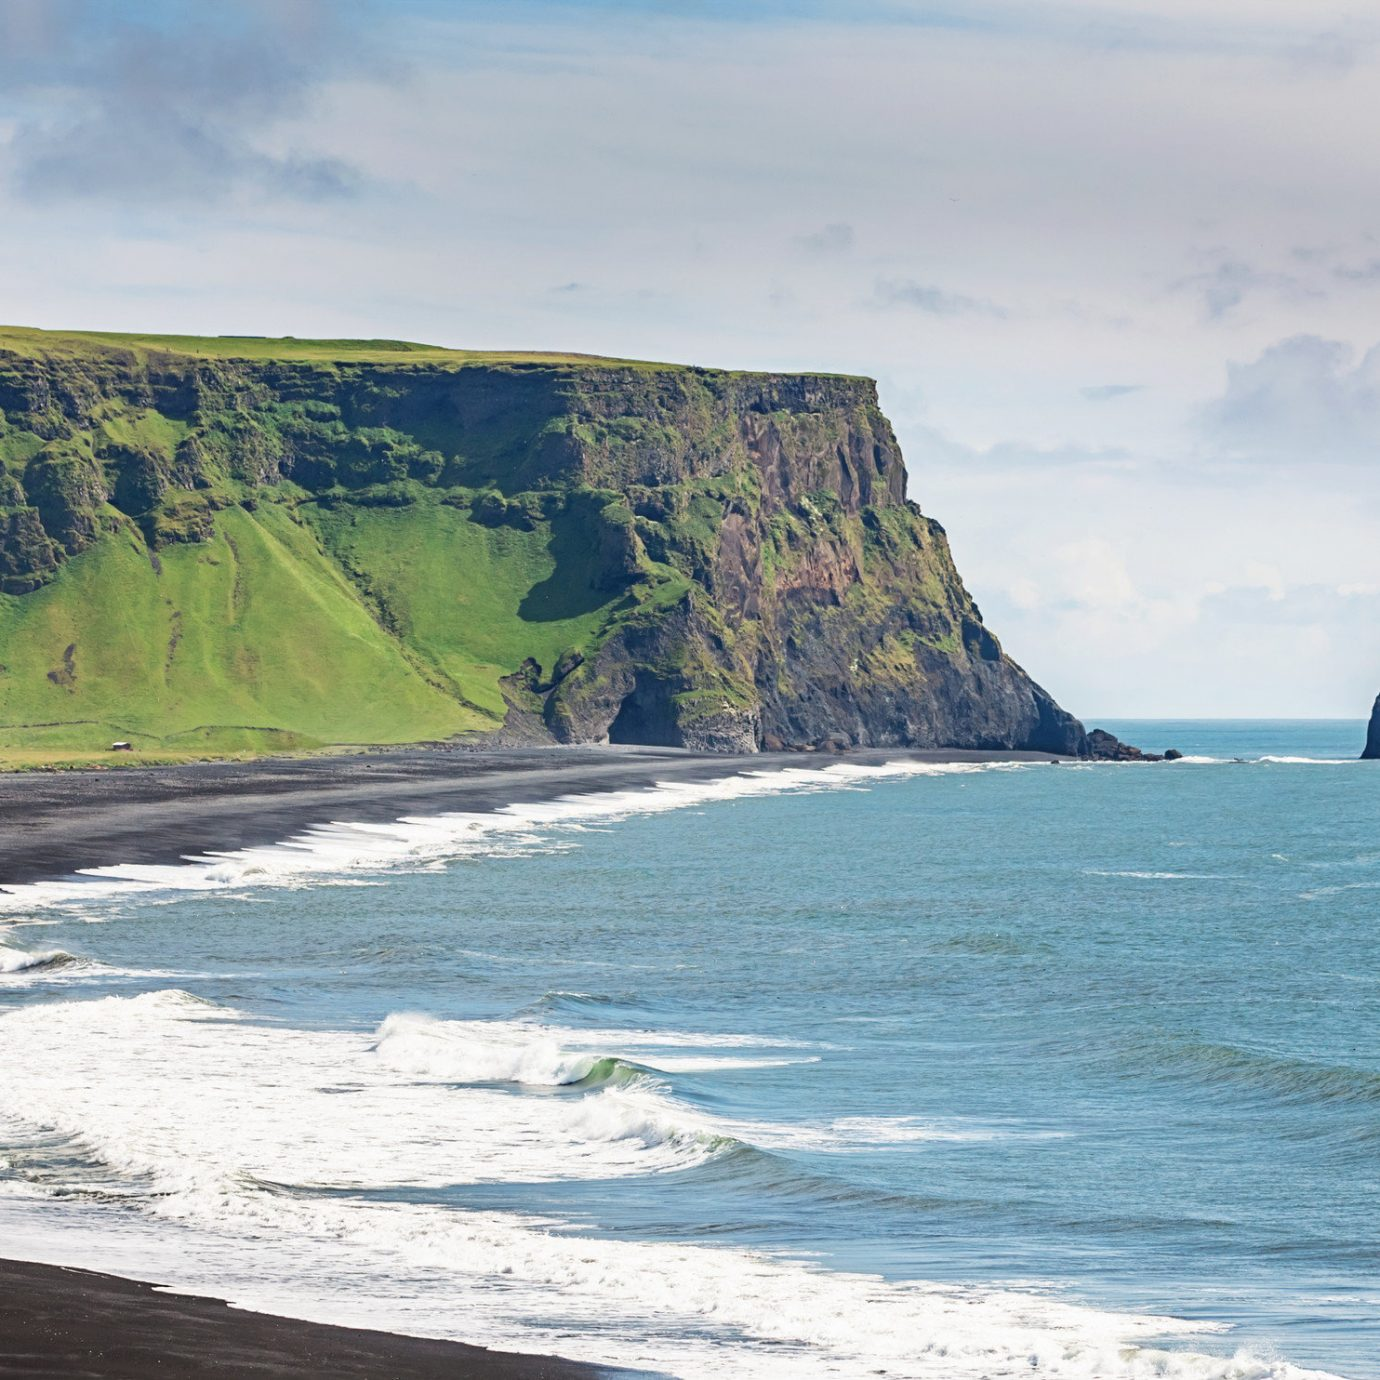 Iceland Outdoors + Adventure Road Trips outdoor sky water Nature Coast cliff Sea geographical feature mountain shore landform Ocean body of water wave wind wave vacation bay Beach terrain rock cape cove Island fjord islet material promontory day